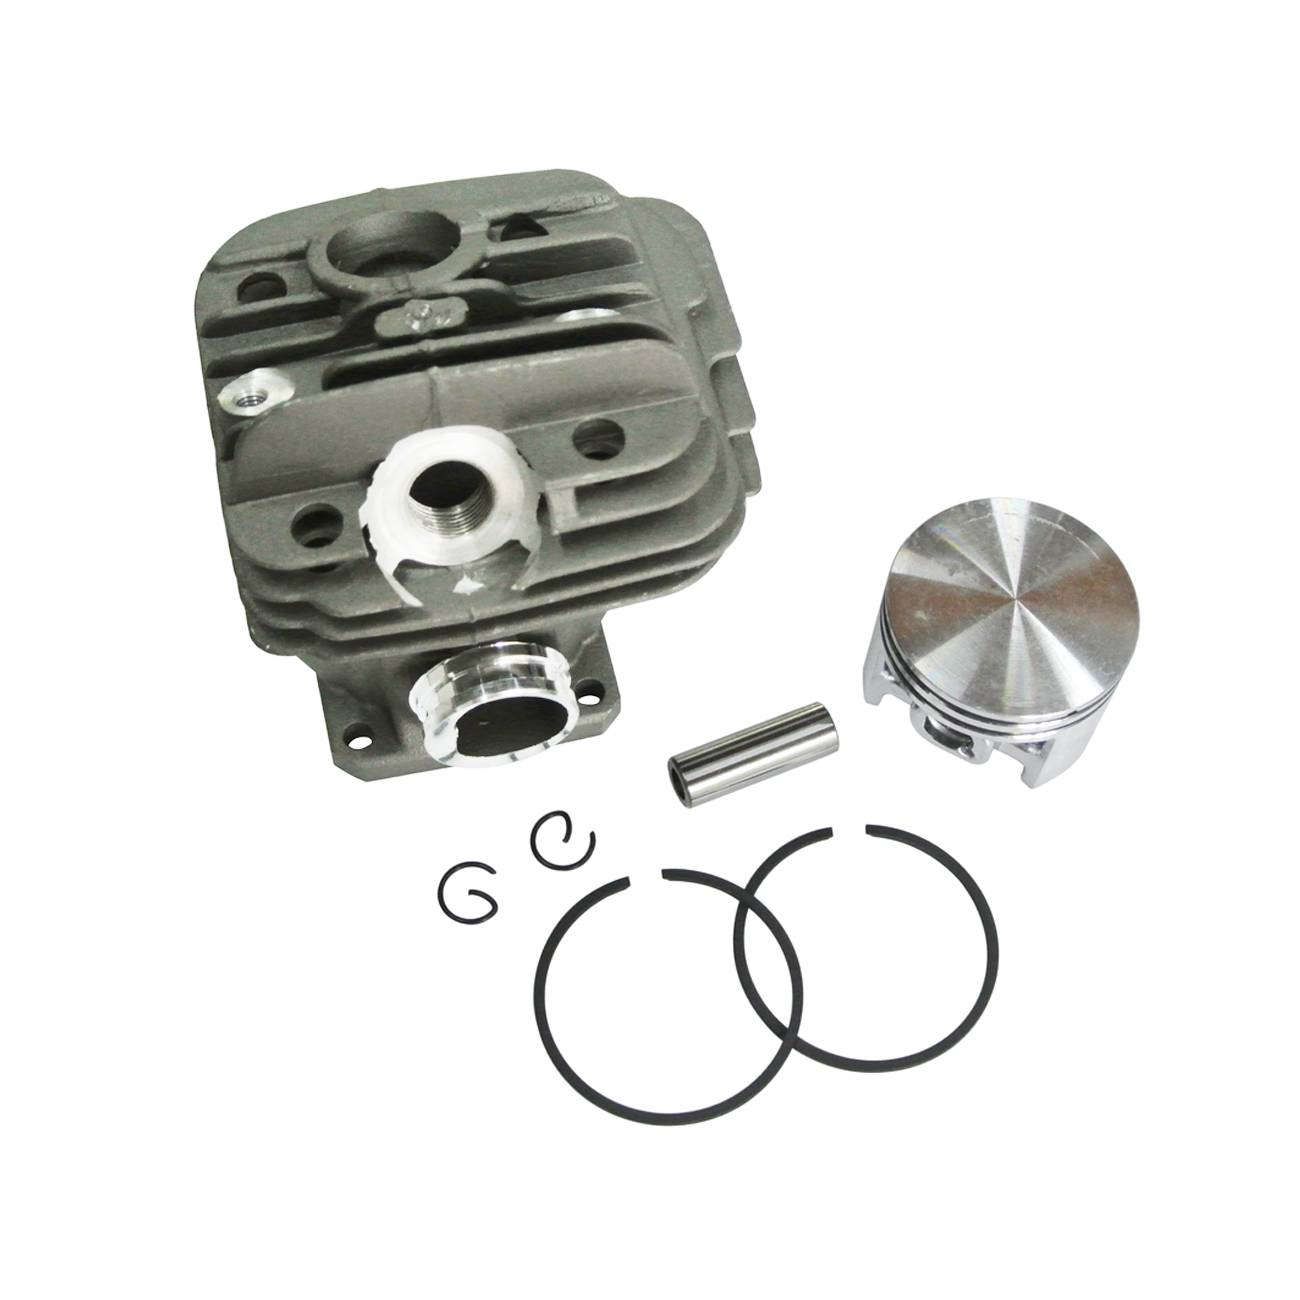 Tools : Cylinder Assy For Stihl 026 MS260 Chainsaw 1121 020 1208